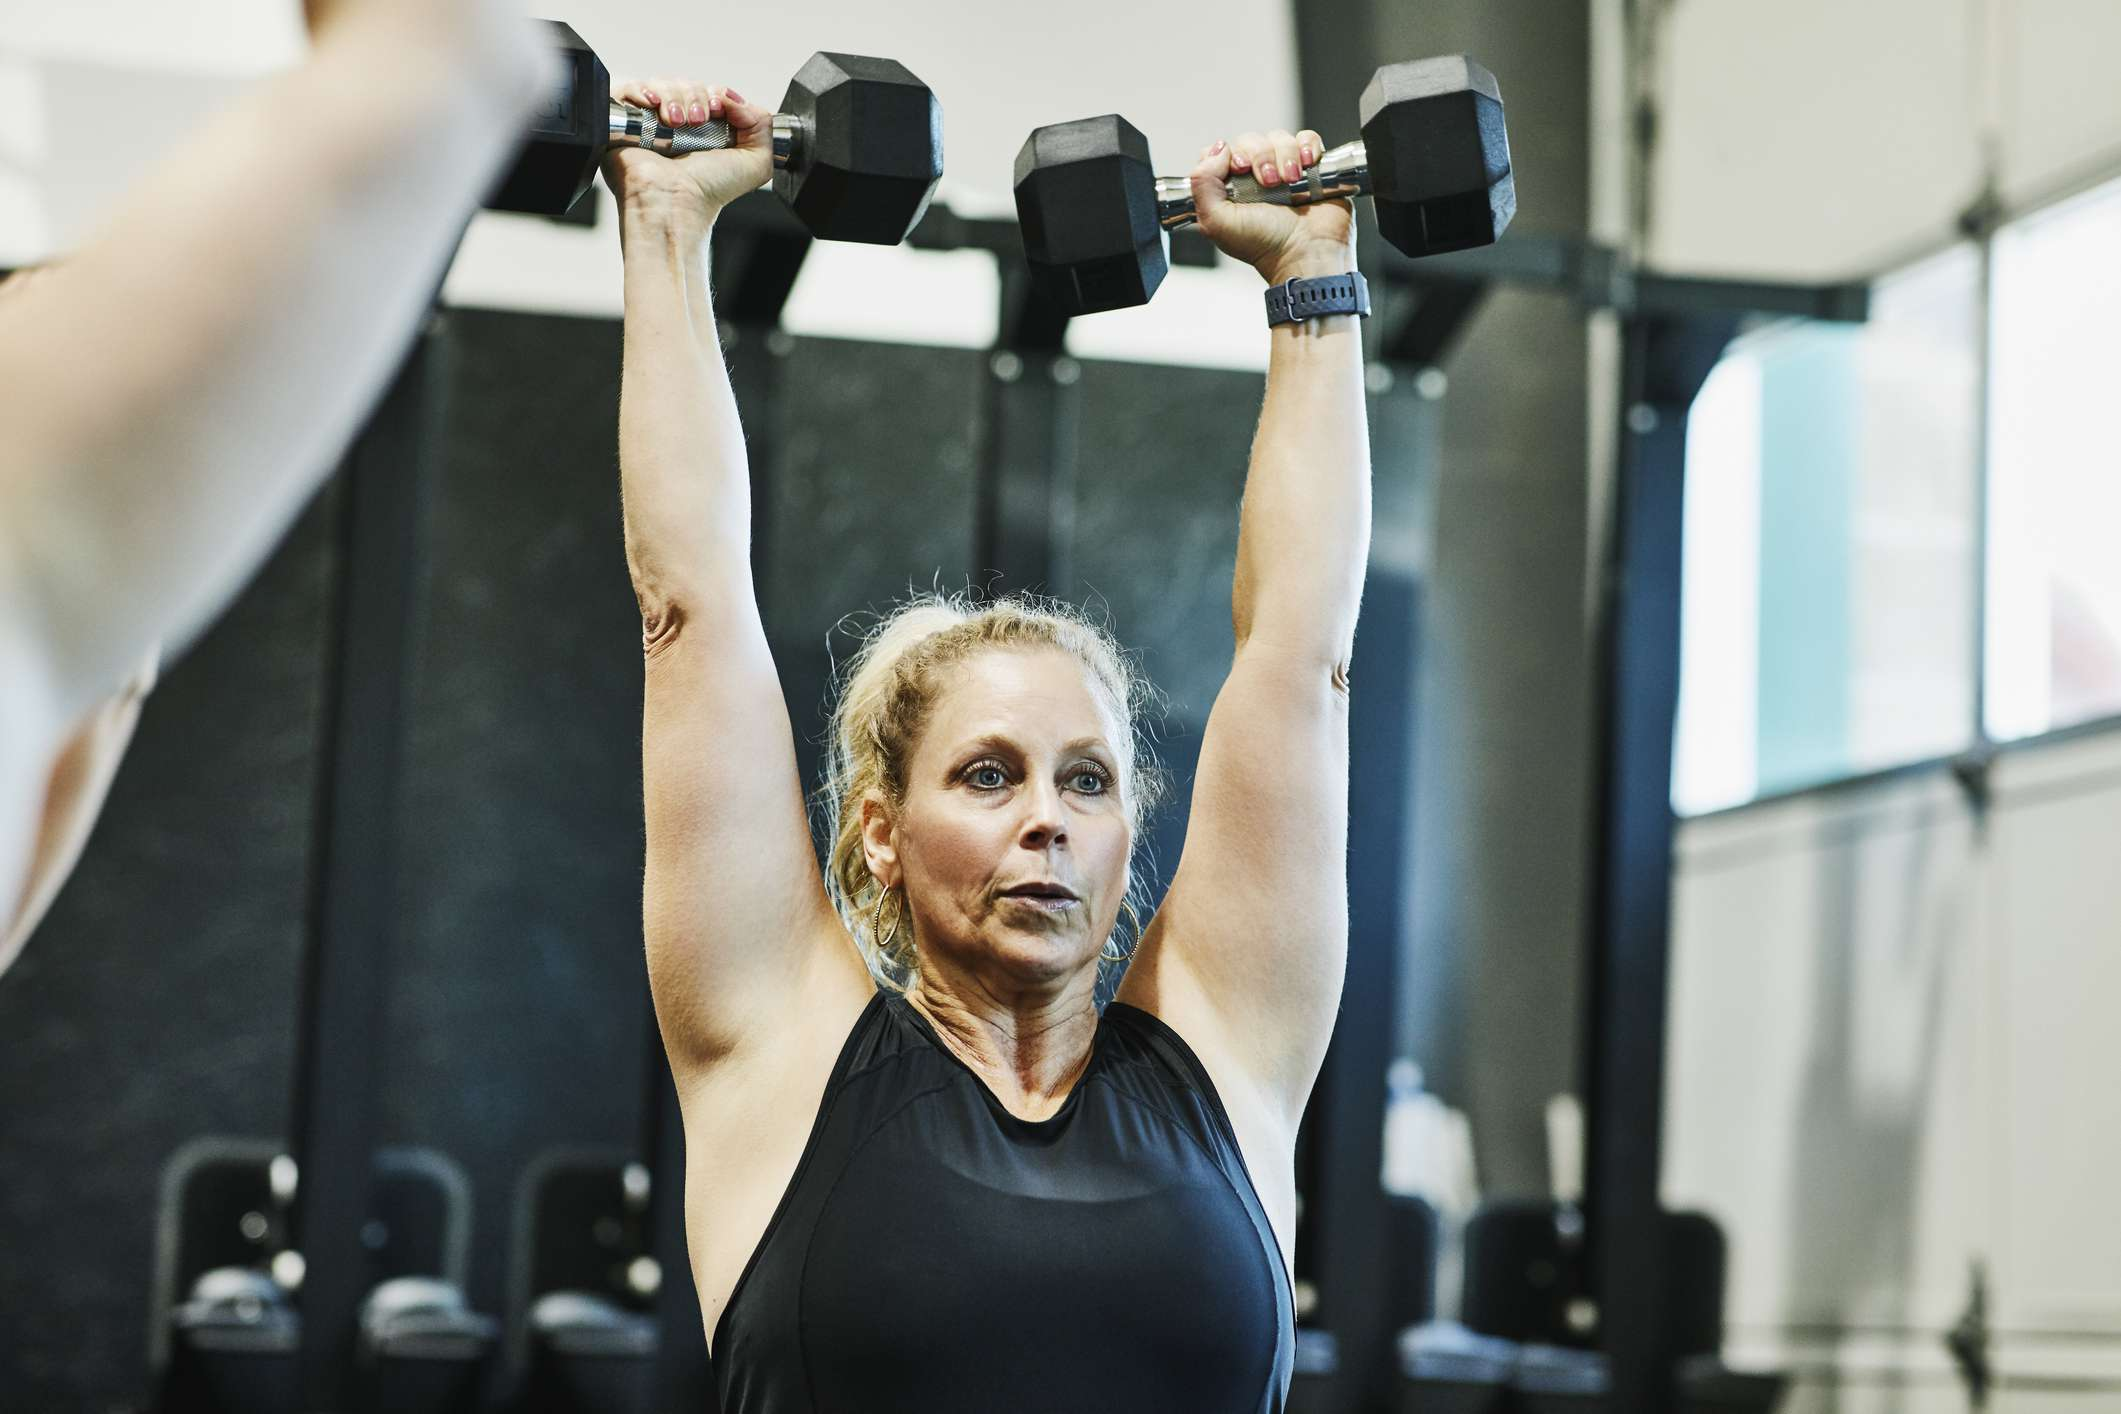 Woman doing overhead dumbbell press during fitness class in gym